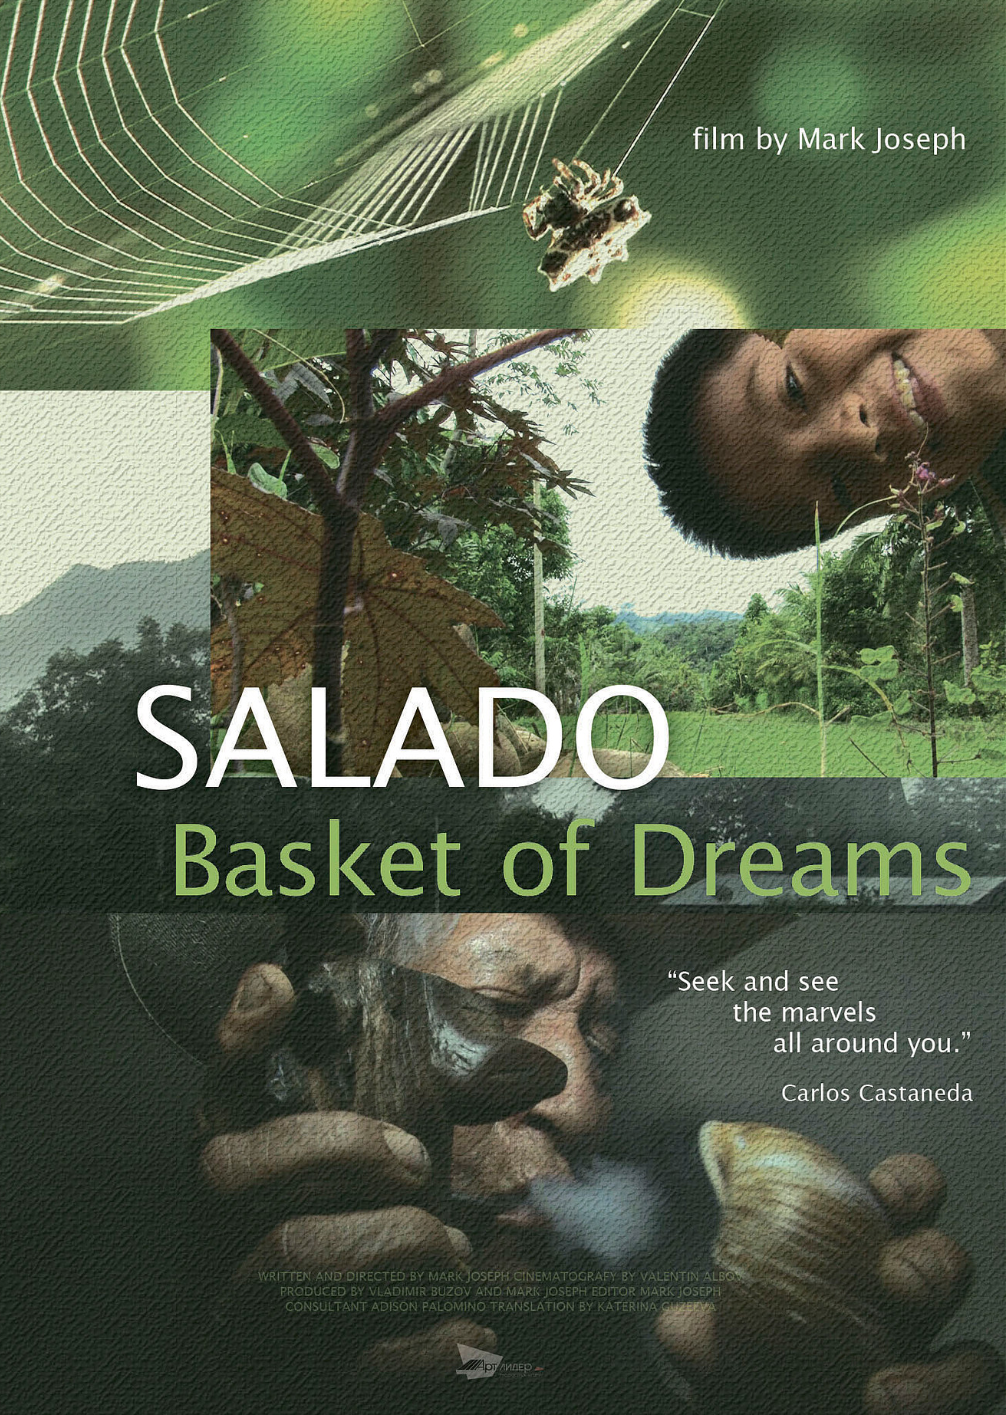 Salado. Basket of Dreams (2015)